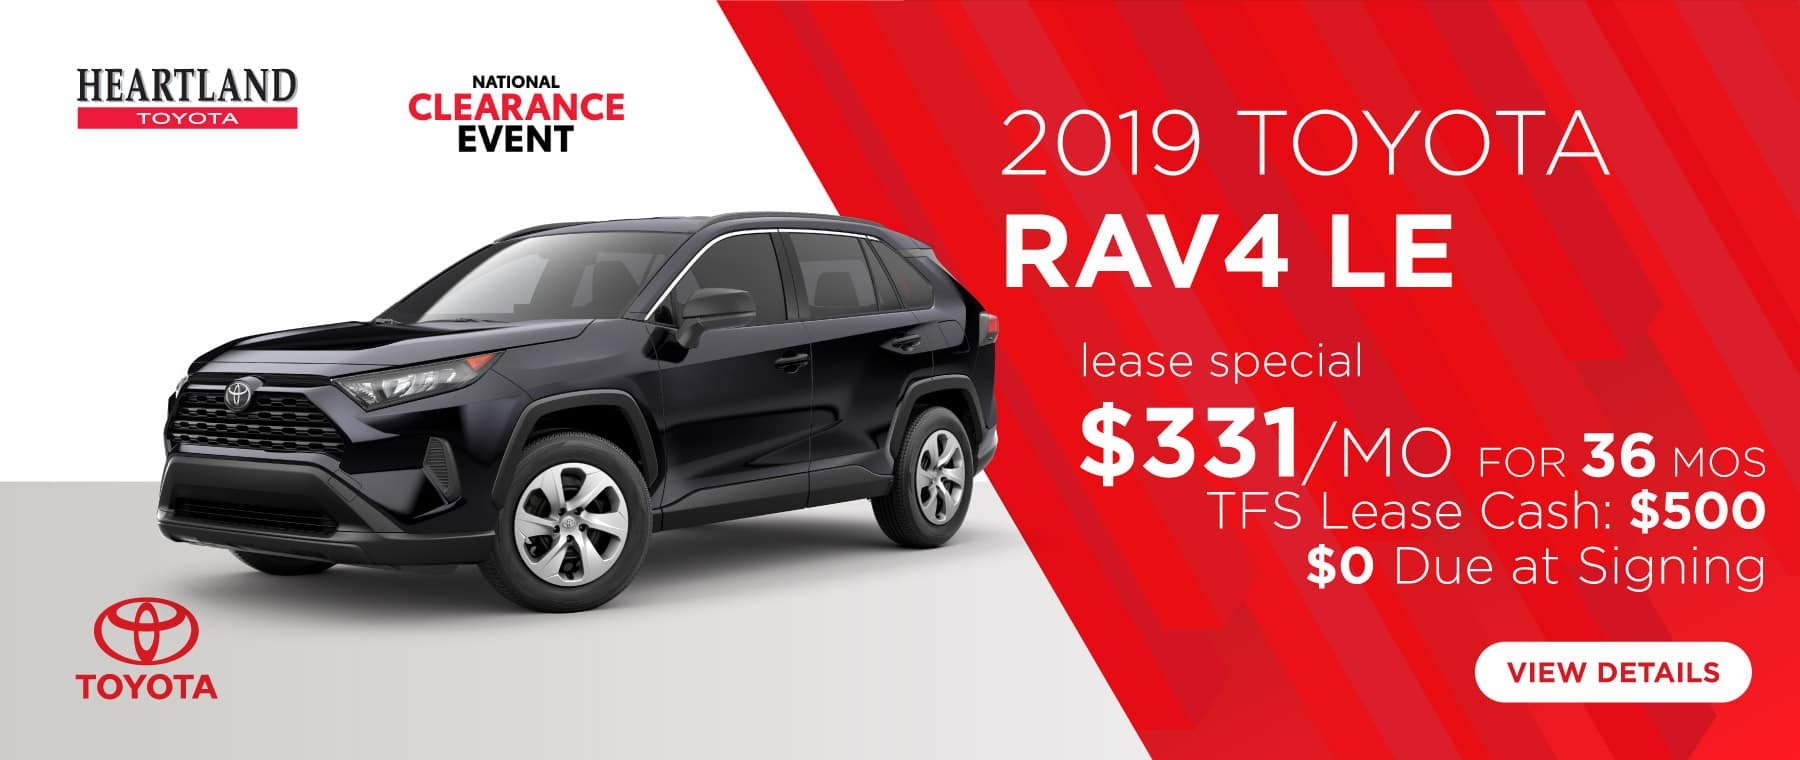 2019 Toyota RAV4 LE (featured vehicle)  $331/mo. For 36 months* $0 Due at Signing  TFS Lease Cash: $500   *Offer valid on 2019 Toyota RAV4 LE (4432), gas models only, hybrids are excluded. $331 per mo. for 36 months. Lease with $0 due at signing; includes a $695 acquisition fee. Valid on VIN: JTMG1RFV4KD029855, 2JTMG1RFV9KD031522, JTMG1RFV8KJ019508, JTMG1RFVXKD034509. MSRP $28,825. Deal #403734. Plus, TFS Lease Cash: $500. Lease is through TFS. Subject to credit approval. No Security deposit required. Excludes taxes, title, and fees. 36 monthly payments required. Not all lessees will qualify for lowest payment through participating lender. Residency restrictions apply. Lessee responsible for mileage over 10,000 miles per year at $0.15/mile per year. Option to purchase at lease end. A negotiable dealer documentary service fee of up to $150 may be added to the sale price or capitalized cost. Offer expires 9/3/2019.